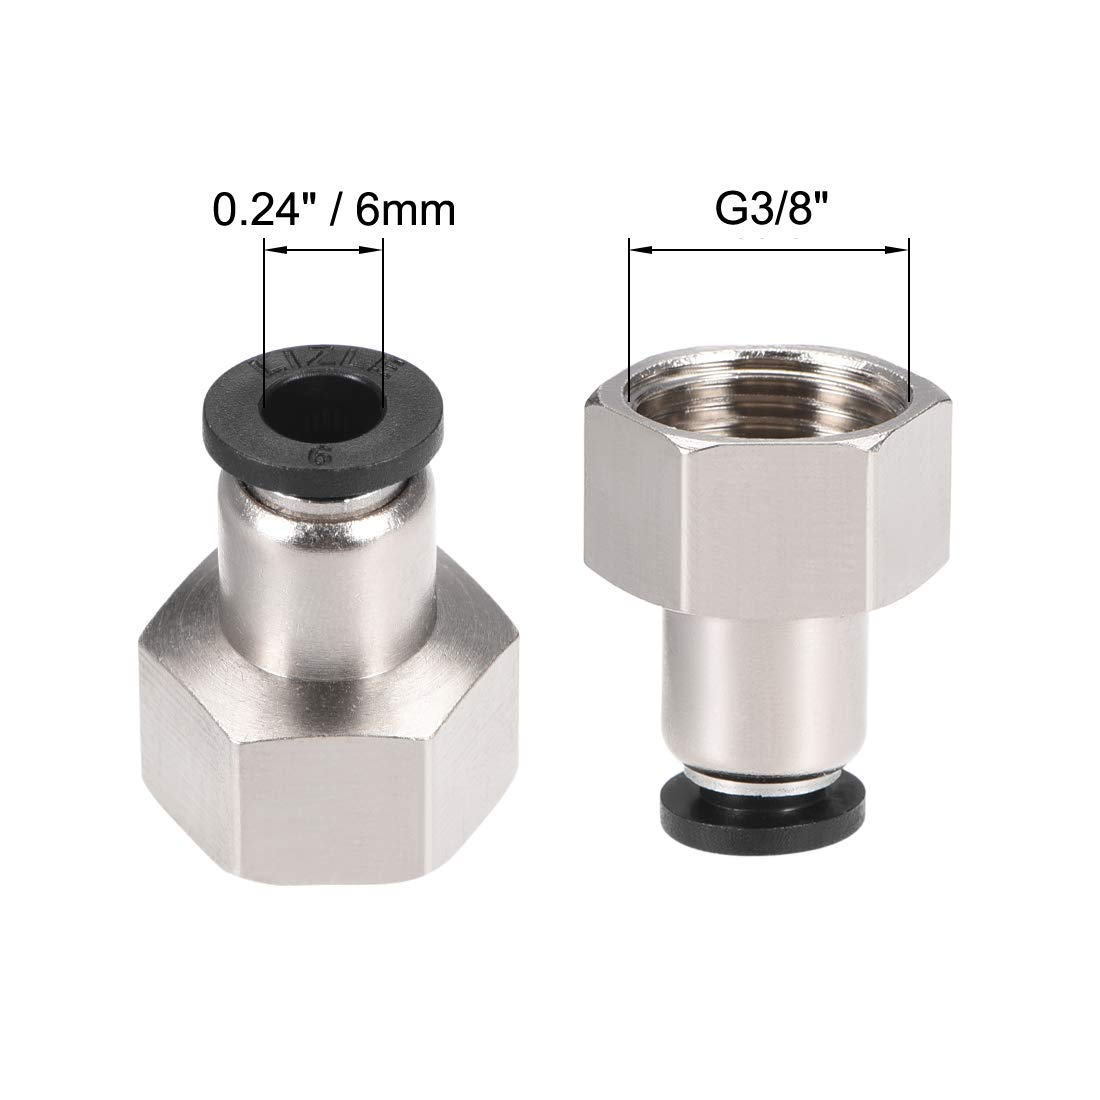 uxcell Push to Connect Tube Fitting Adapter 6mm Tube OD x G3//8 Female Straight Pneumatic Connecter Connect Pipe Fitting Silver Tone 2pcs